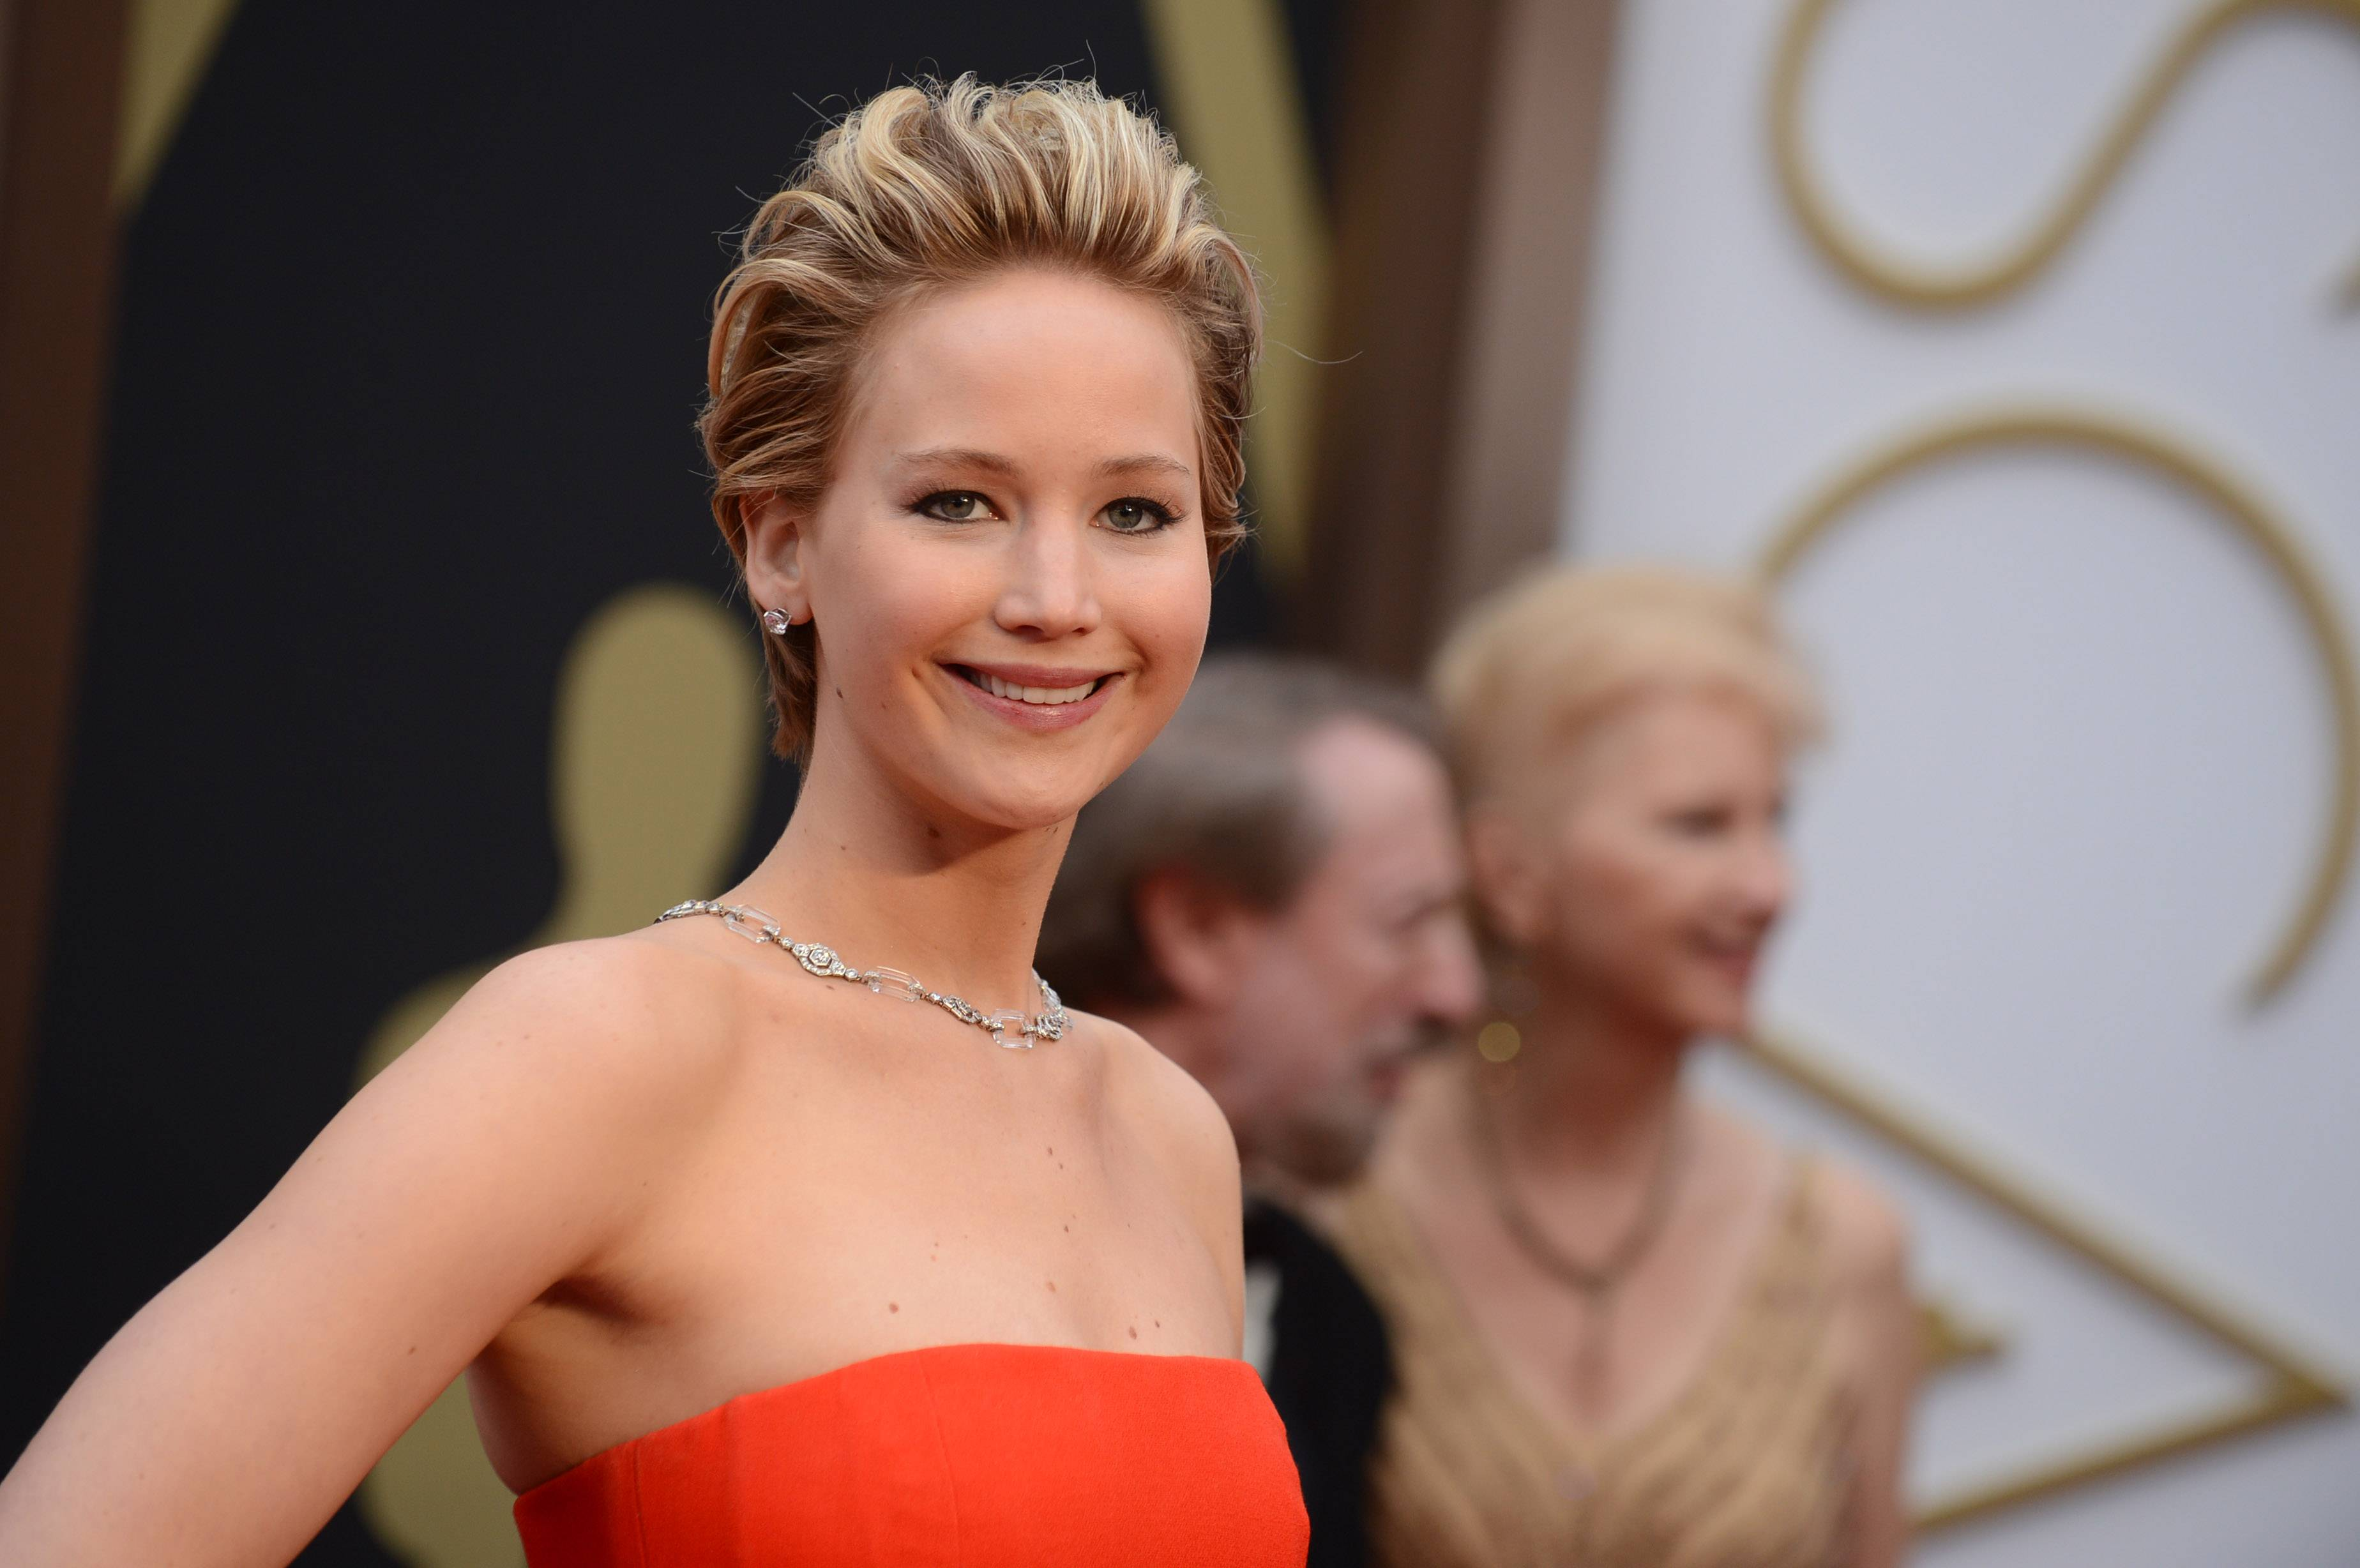 Jennifer Lawrence arrives at the Oscars. As the celebrity photo-hacking scandal has made clear, privacy isn't what it used to be. Whether famous or seemingly anonymous, people from all walks of life put all sorts of things online or into cloud-based storage systems, from vital financial information to the occasional nude photo.